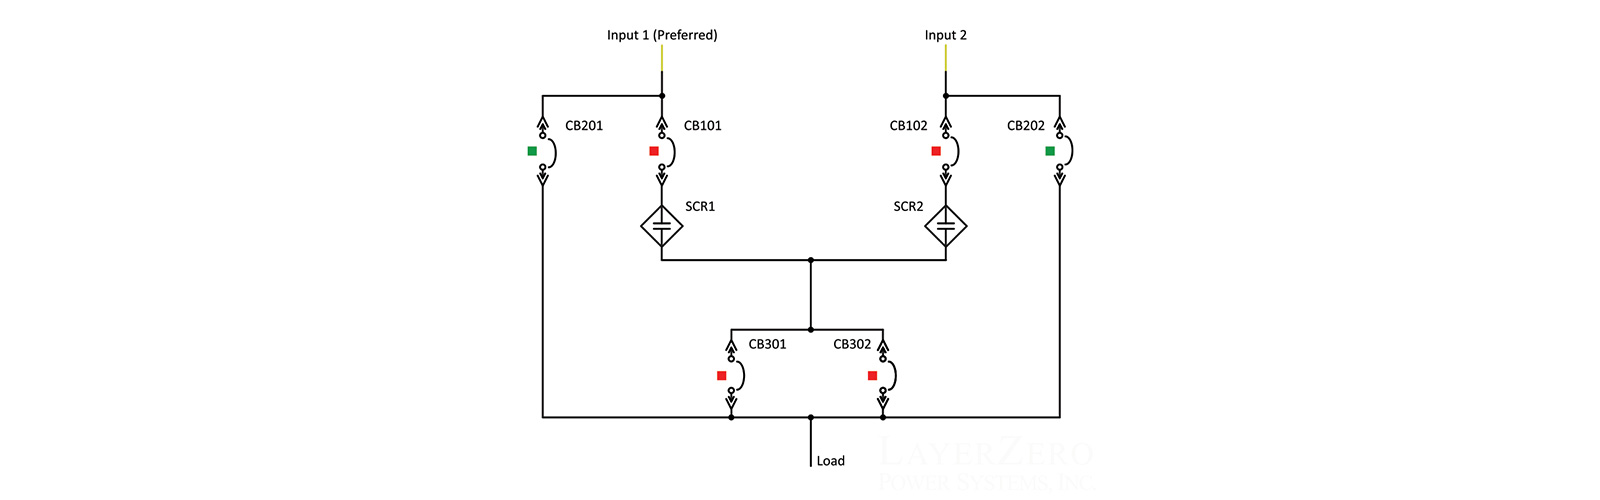 Static Transfer Switch Schematic Diagram